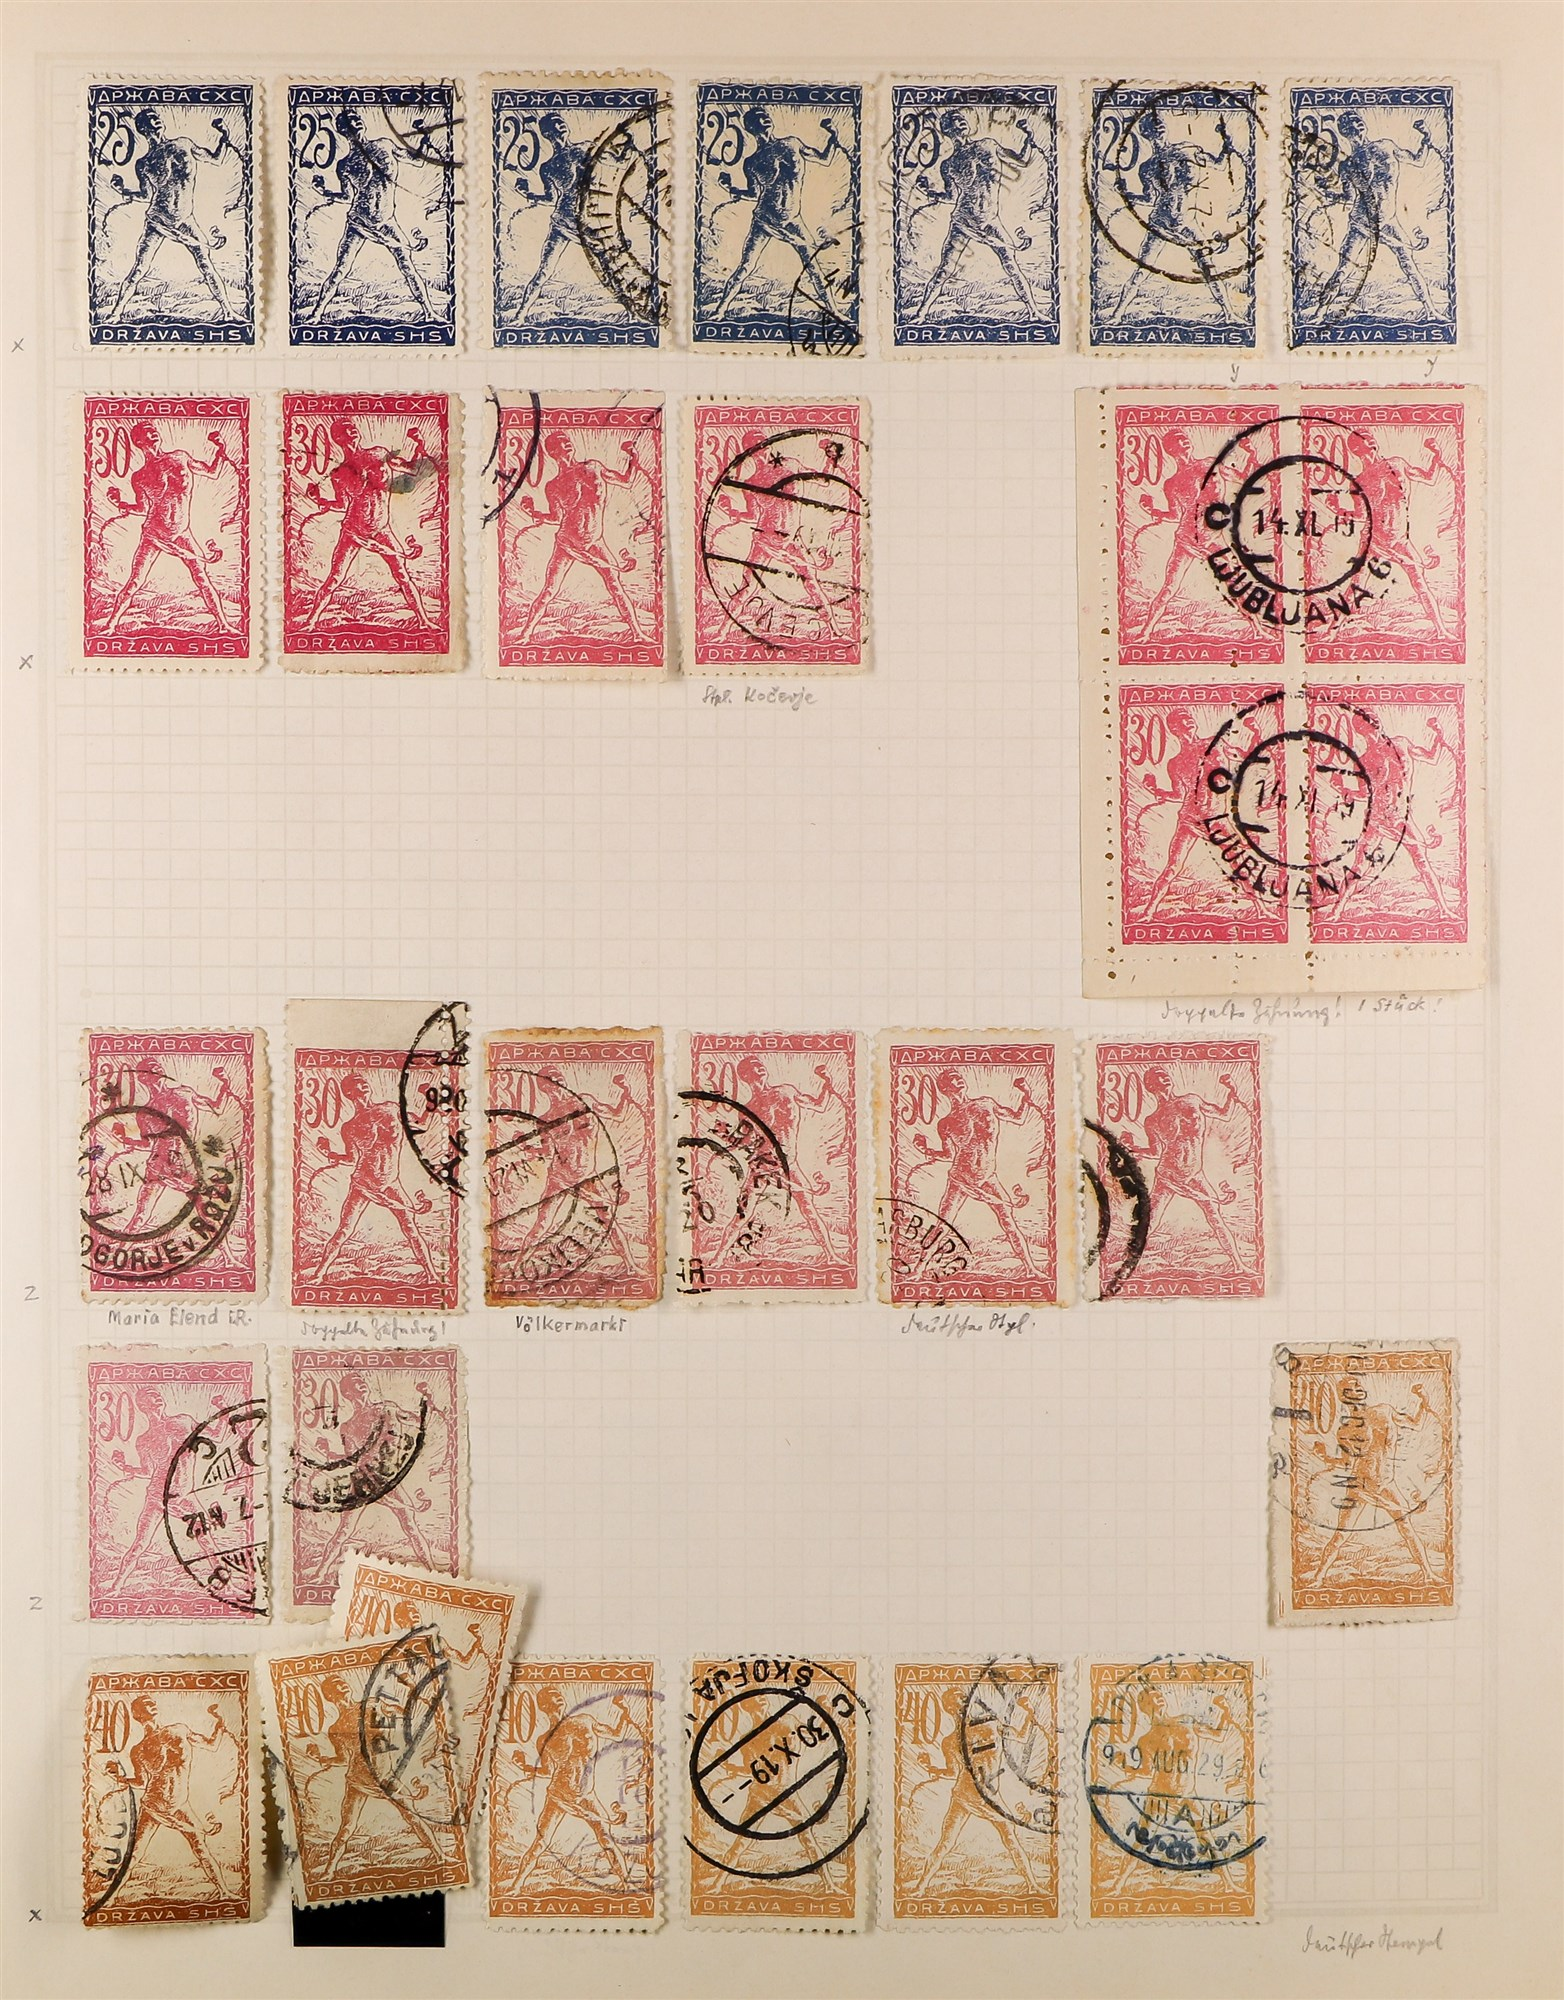 YUGOSLAVIA 1919-80 COLLECTION of mint and used issues in an album, incl. extensive Chainbreakers,